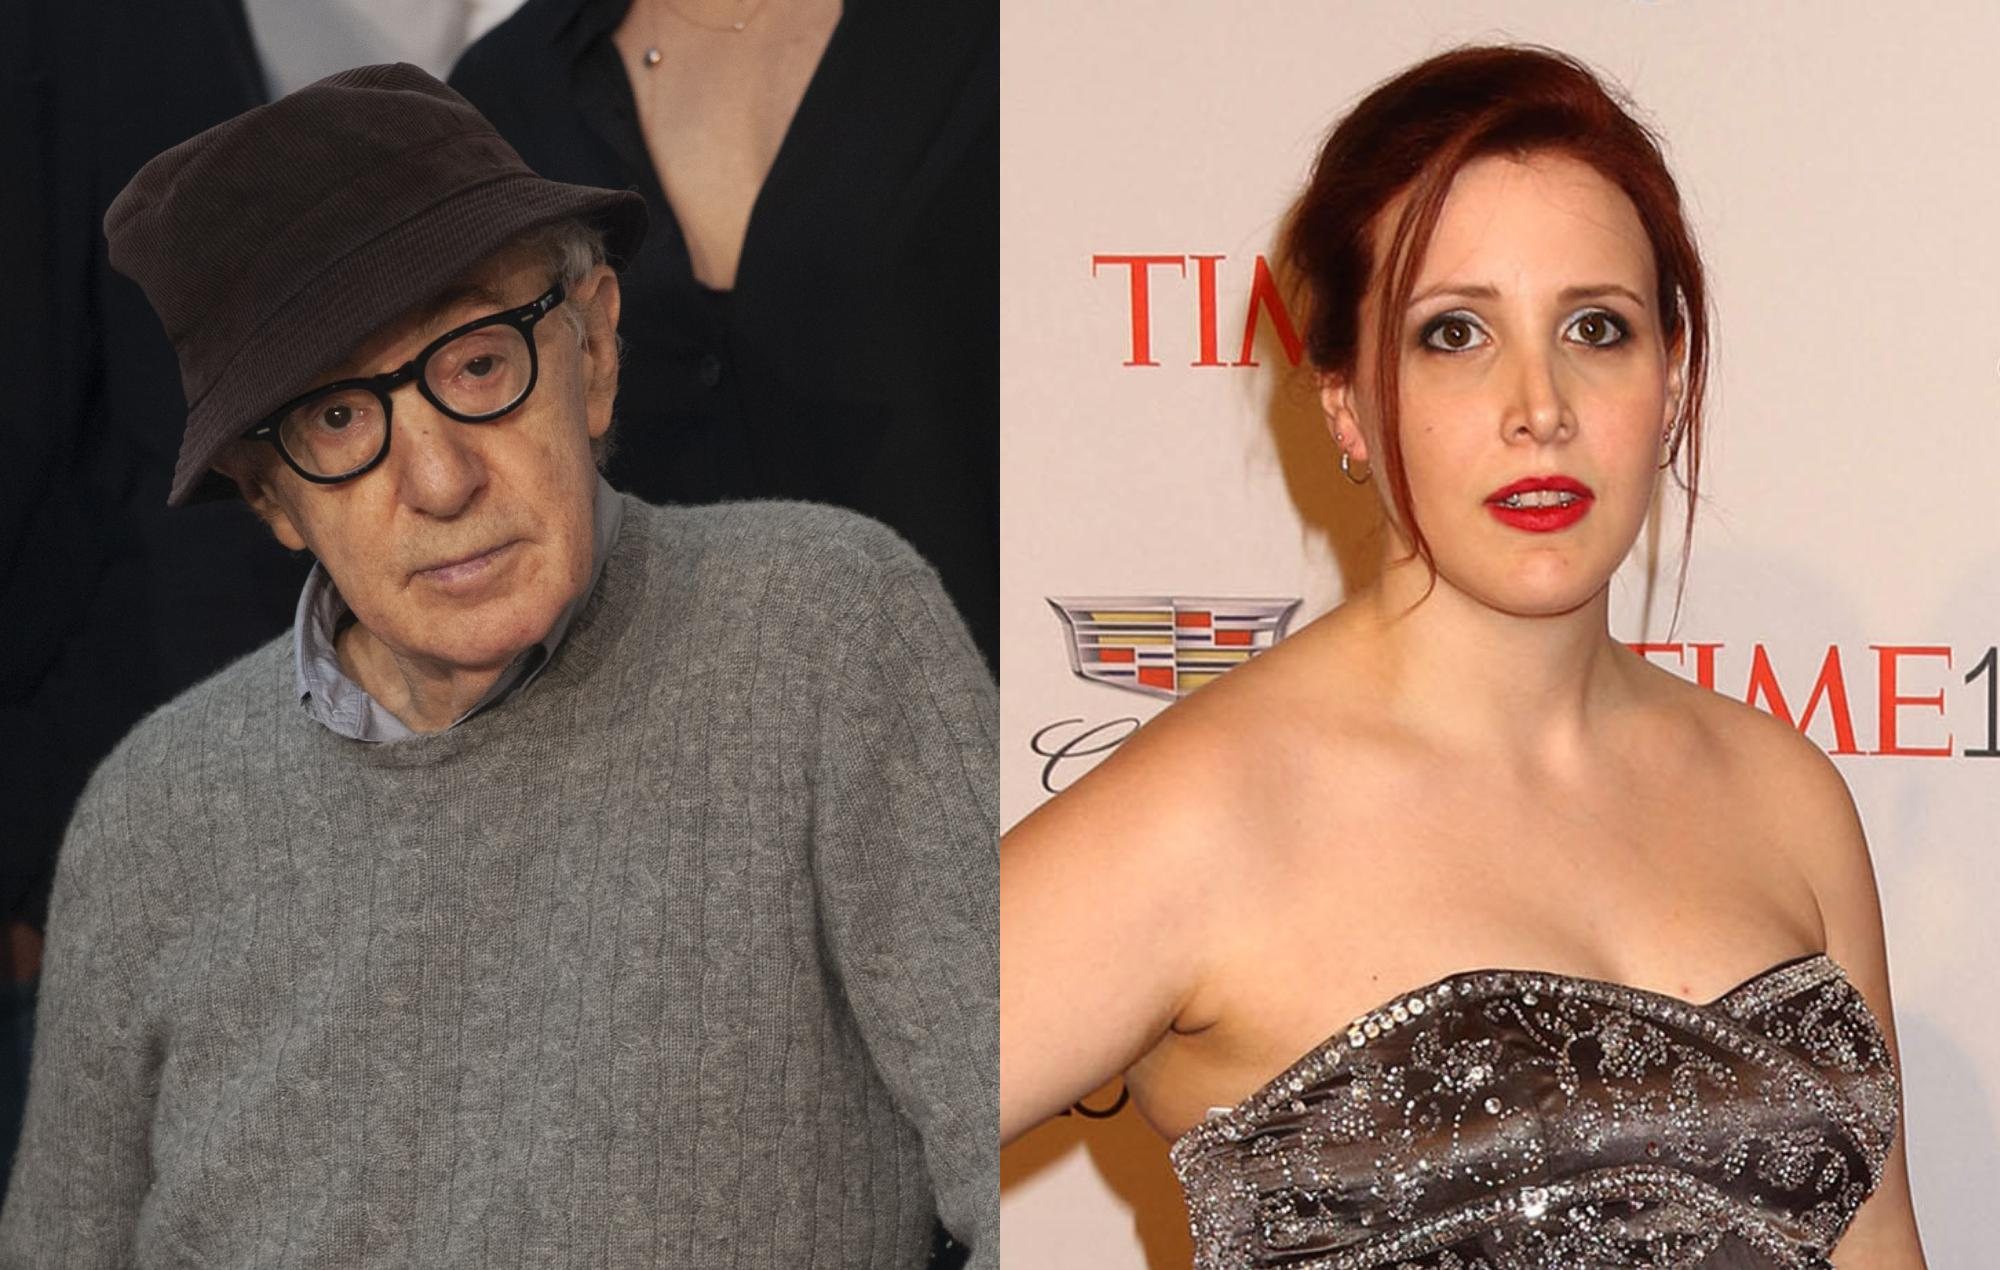 Woody Allen responds to abuse allegations in first TV interview for years